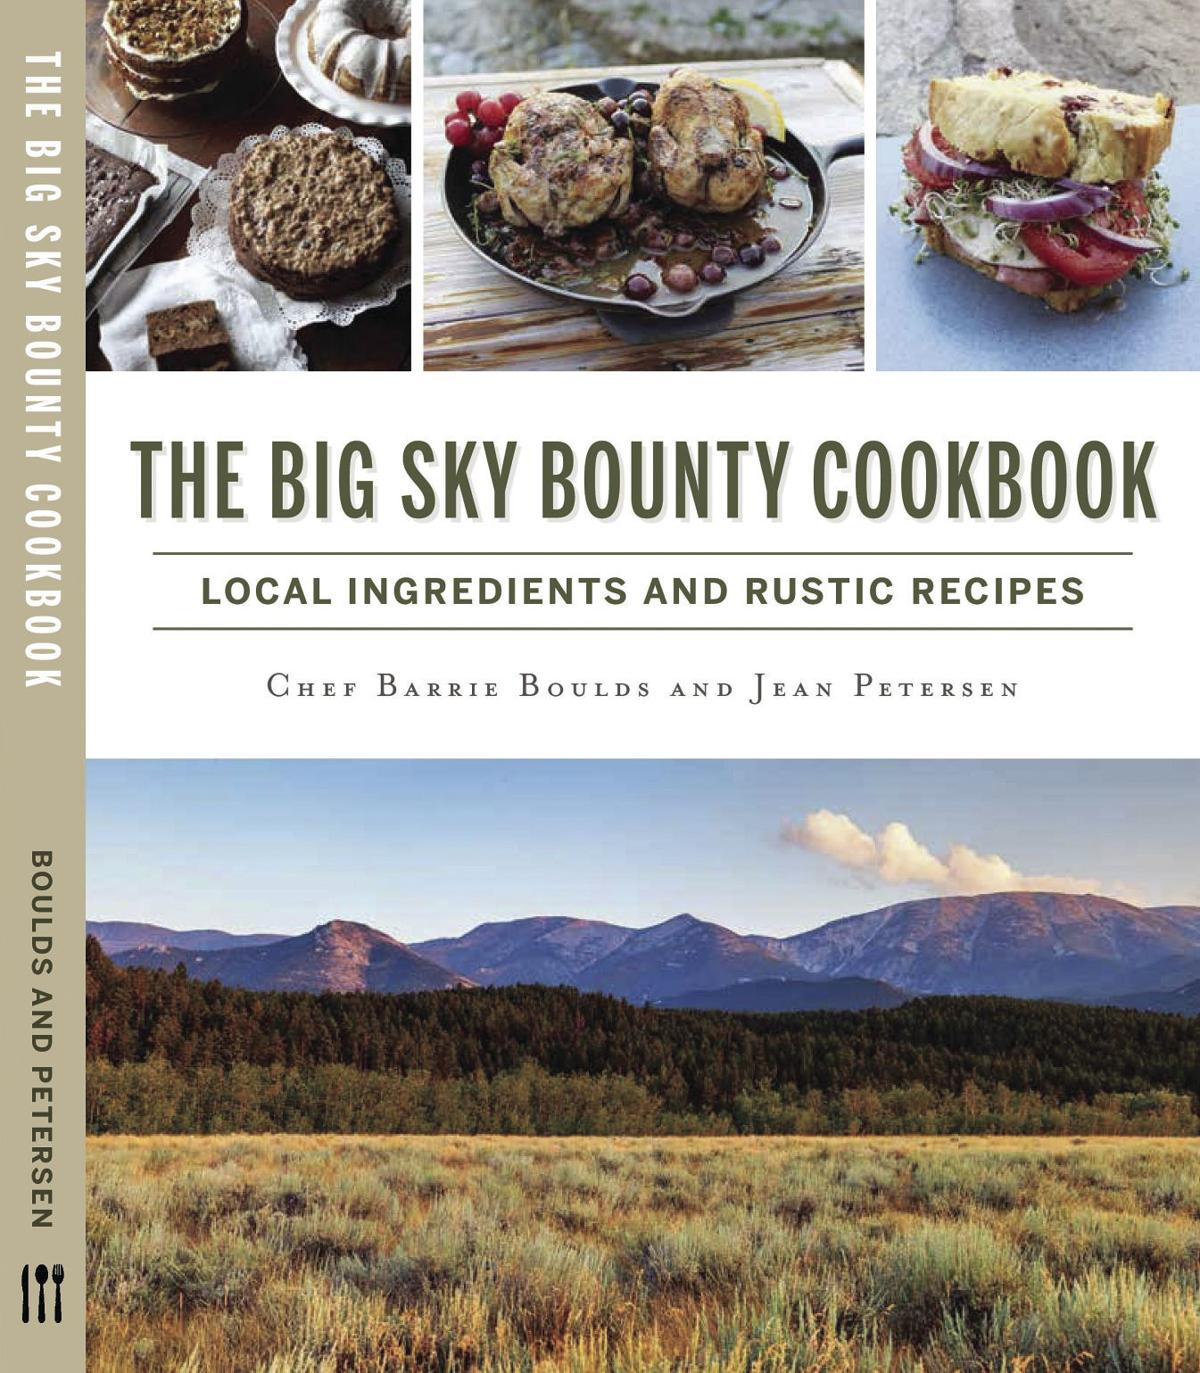 The Big Sky Bounty Cookbook cover